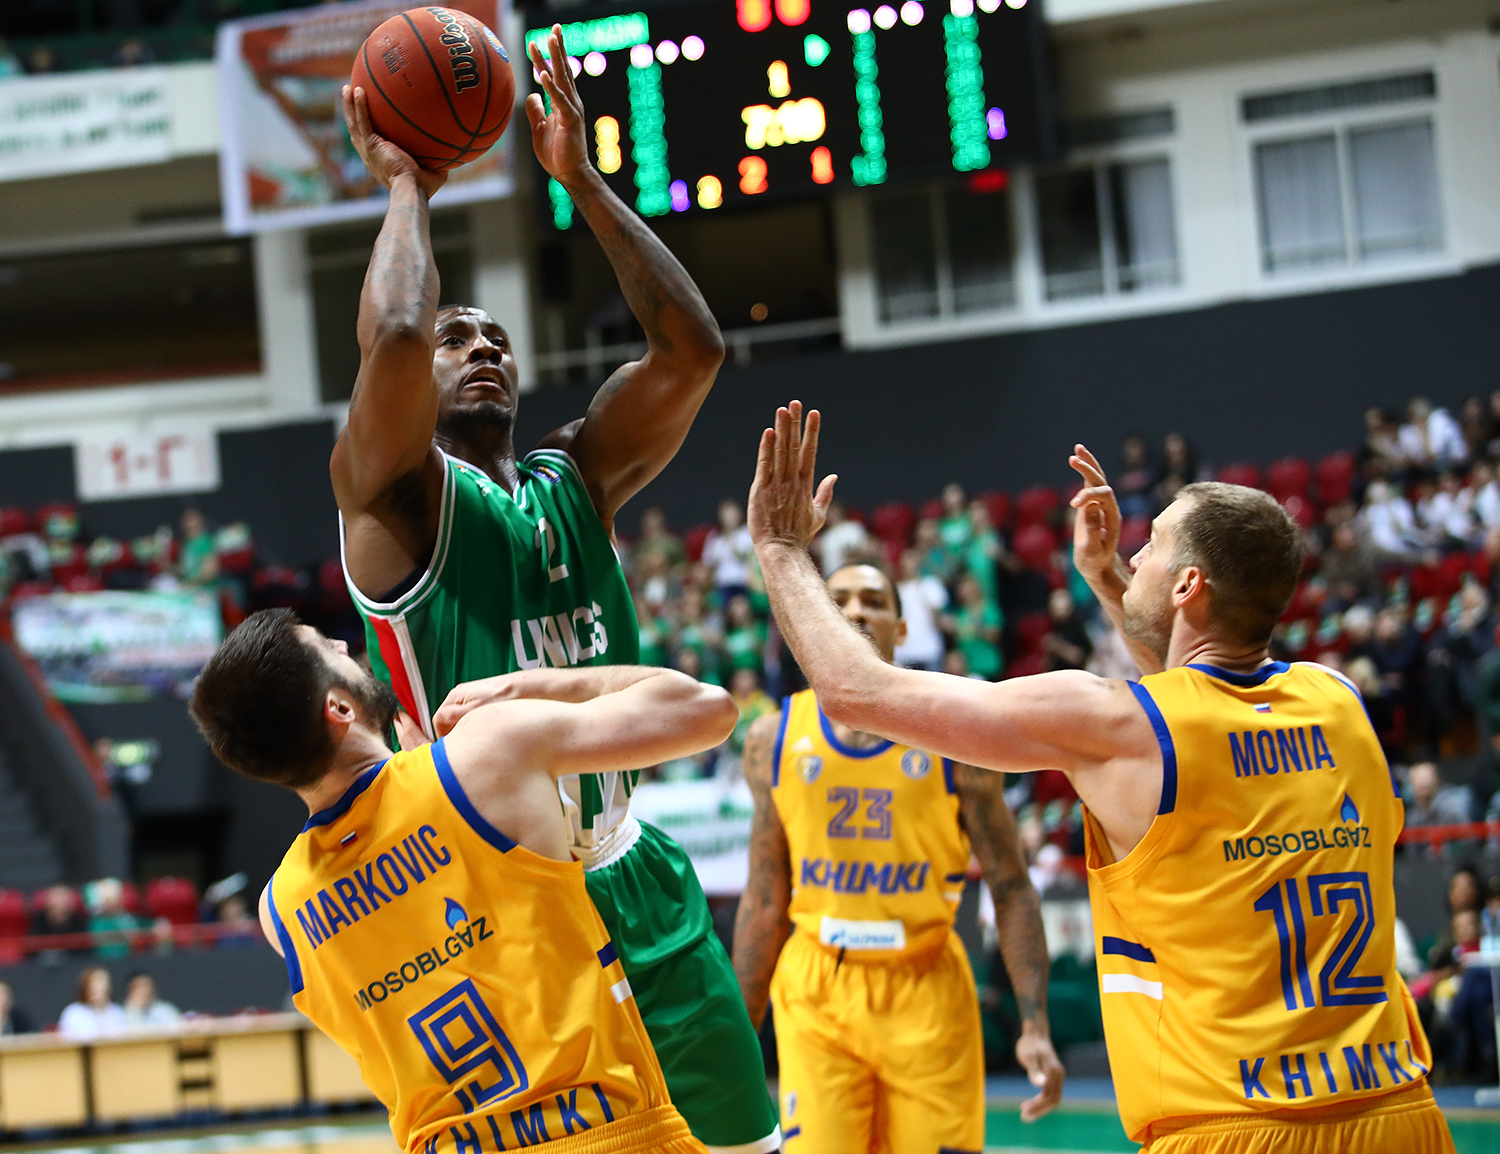 UNICS Dominates Khimki In Top-Three Showdown